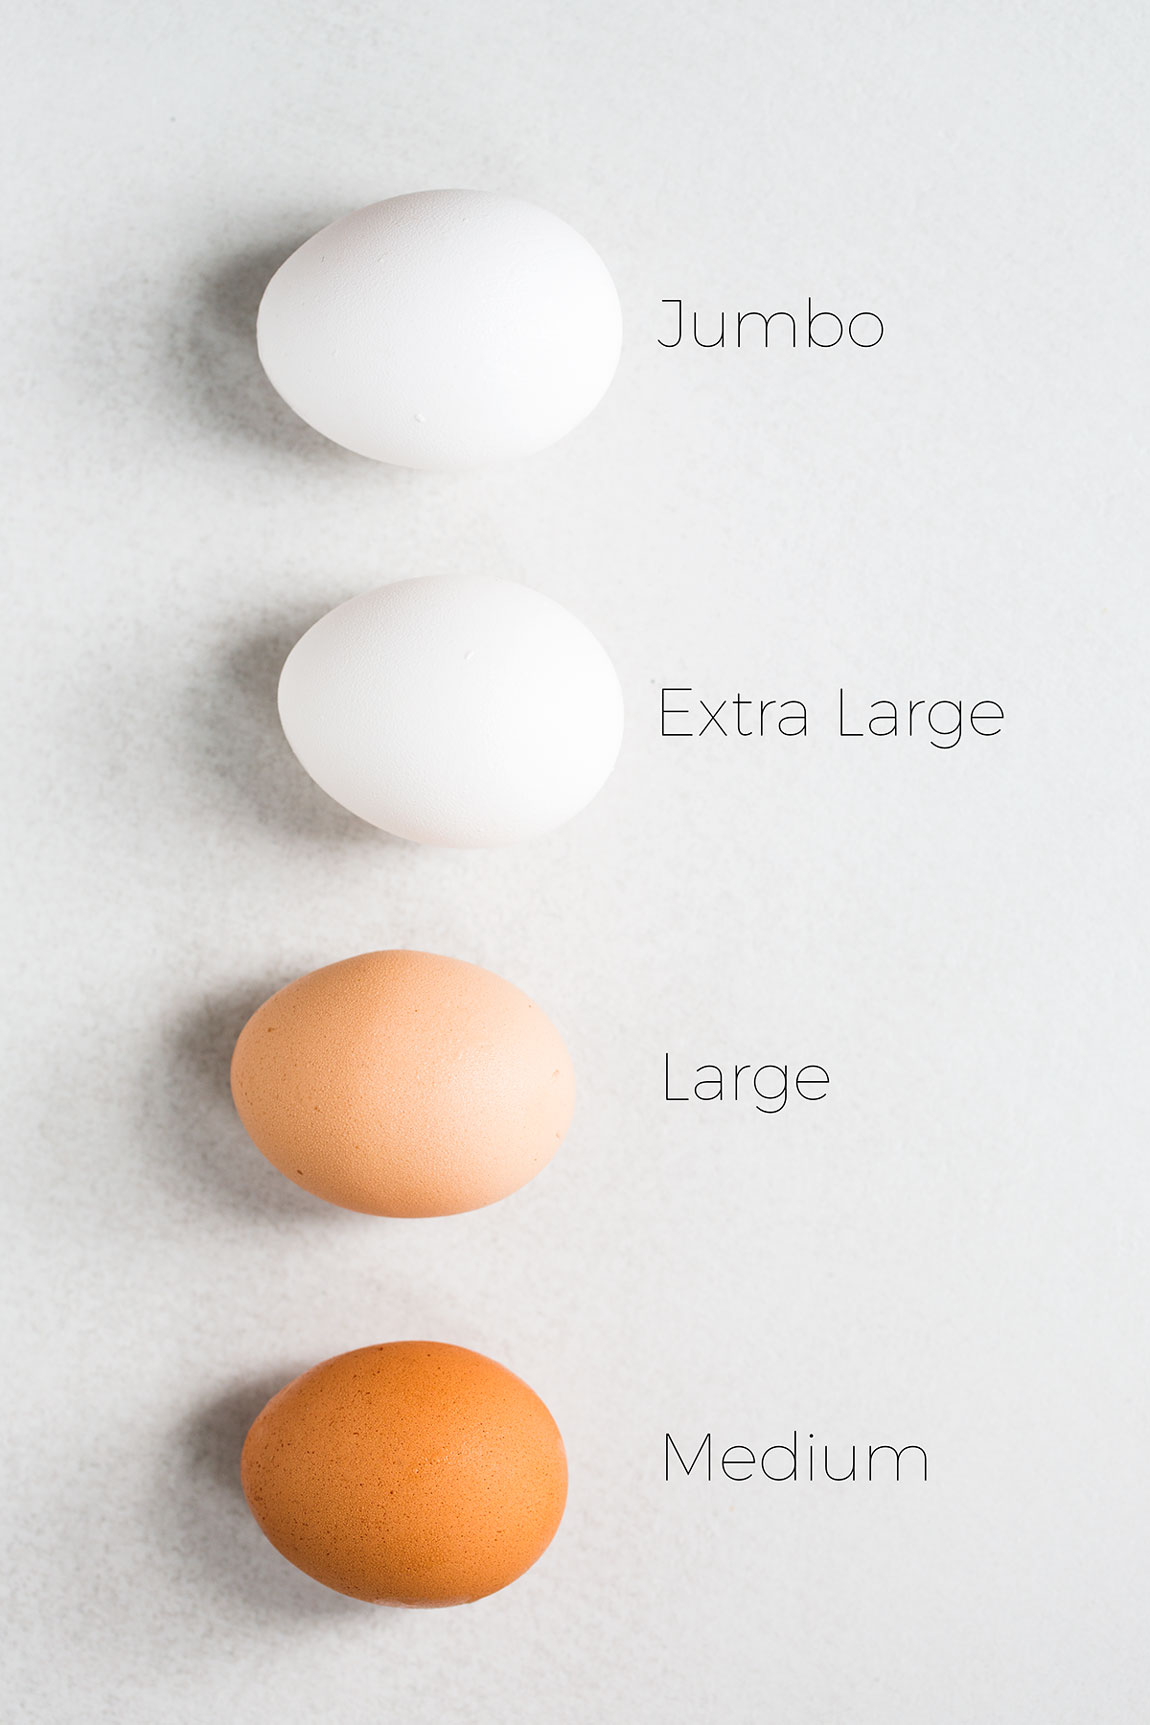 Jumbo, extra large, large, and medium eggs laid out next to each other for egg size comparison, with text overlays to identify each egg.